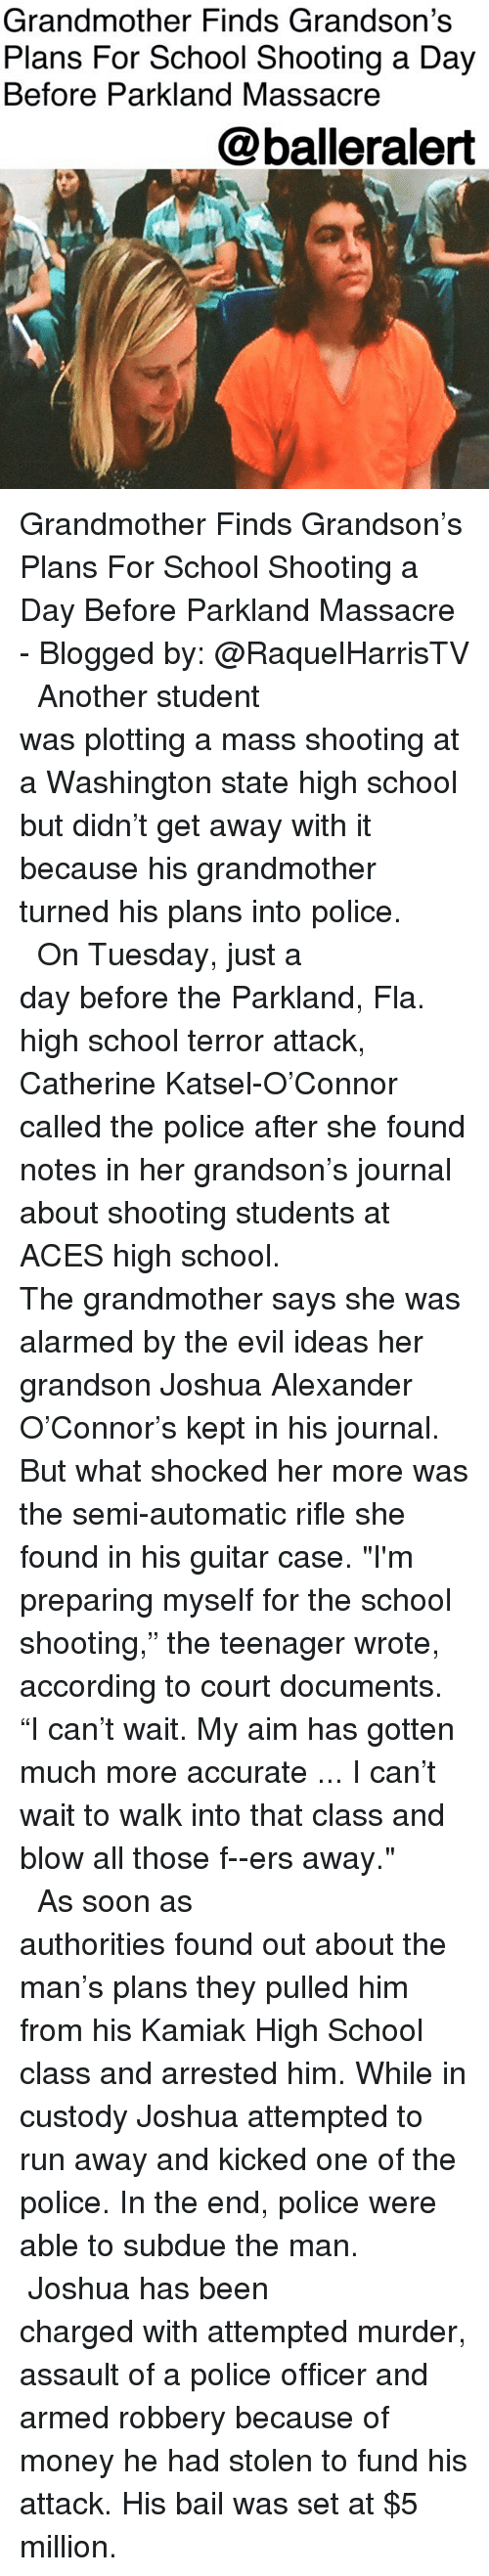 "Alarmed: Grandmother Finds Grandson's  Plans For School Shooting a Day  Before Parkland Massacre  @balleralert Grandmother Finds Grandson's Plans For School Shooting a Day Before Parkland Massacre - Blogged by: @RaquelHarrisTV ⠀⠀⠀⠀⠀⠀⠀⠀⠀ ⠀⠀⠀⠀⠀⠀⠀⠀⠀ Another student was plotting a mass shooting at a Washington state high school but didn't get away with it because his grandmother turned his plans into police. ⠀⠀⠀⠀⠀⠀⠀⠀⠀ ⠀⠀⠀⠀⠀⠀⠀⠀⠀ On Tuesday, just a day before the Parkland, Fla. high school terror attack, Catherine Katsel-O'Connor called the police after she found notes in her grandson's journal about shooting students at ACES high school. ⠀⠀⠀⠀⠀⠀⠀⠀⠀ ⠀⠀⠀⠀⠀⠀⠀⠀⠀ The grandmother says she was alarmed by the evil ideas her grandson Joshua Alexander O'Connor's kept in his journal. But what shocked her more was the semi-automatic rifle she found in his guitar case. ""I'm preparing myself for the school shooting,"" the teenager wrote, according to court documents. ""I can't wait. My aim has gotten much more accurate ... I can't wait to walk into that class and blow all those f--ers away."" ⠀⠀⠀⠀⠀⠀⠀⠀⠀ ⠀⠀⠀⠀⠀⠀⠀⠀⠀ As soon as authorities found out about the man's plans they pulled him from his Kamiak High School class and arrested him. While in custody Joshua attempted to run away and kicked one of the police. In the end, police were able to subdue the man. ⠀⠀⠀⠀⠀⠀⠀⠀⠀ ⠀⠀⠀⠀⠀⠀⠀⠀⠀ Joshua has been charged with attempted murder, assault of a police officer and armed robbery because of money he had stolen to fund his attack. His bail was set at $5 million."